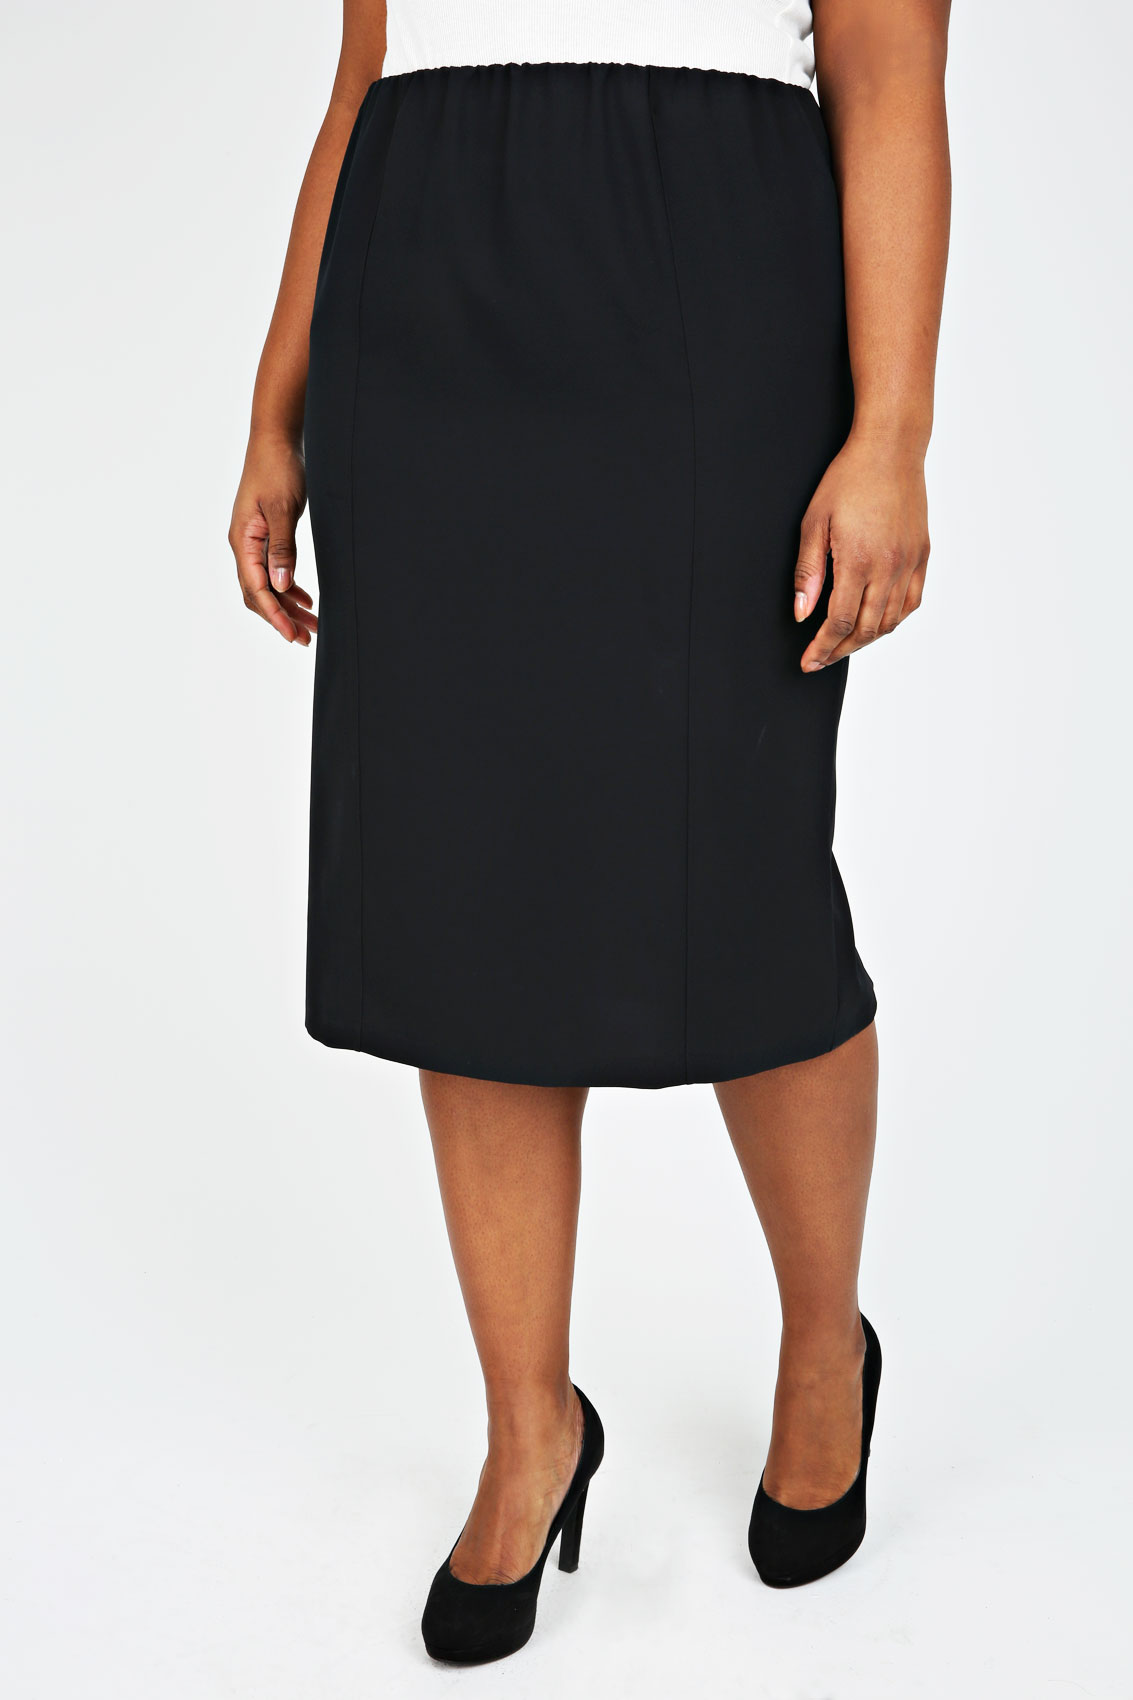 Shop skirts at Lands' End. We offer Khaki Skirts, maxi skirts, mid length skirts, A-line skirts & pencil skirts. FREE Shipping on $50+ Orders.